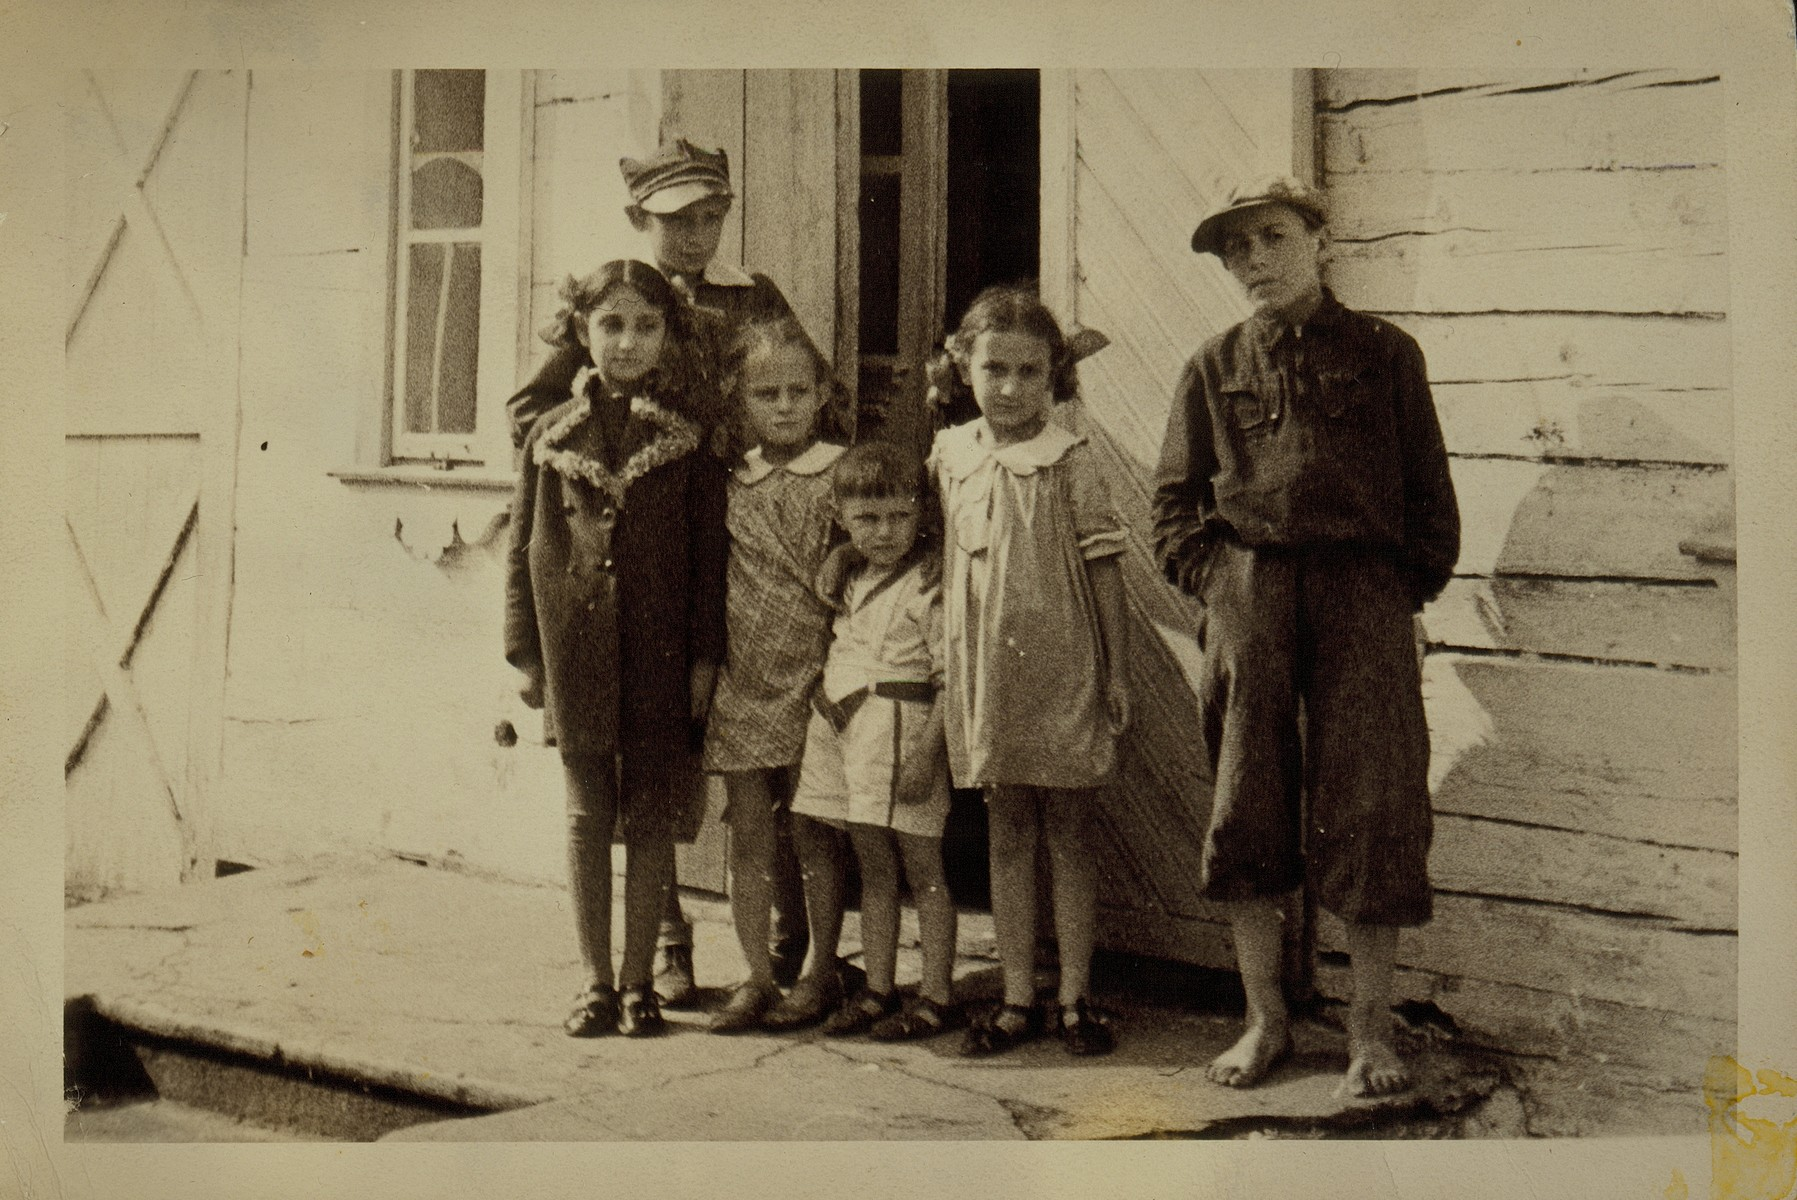 Group portrait of children in front of a private home in the town of Eisiskes.  The Jews of this shtetl  were murdered by the Einsatzgruppen on September 21, 1941.